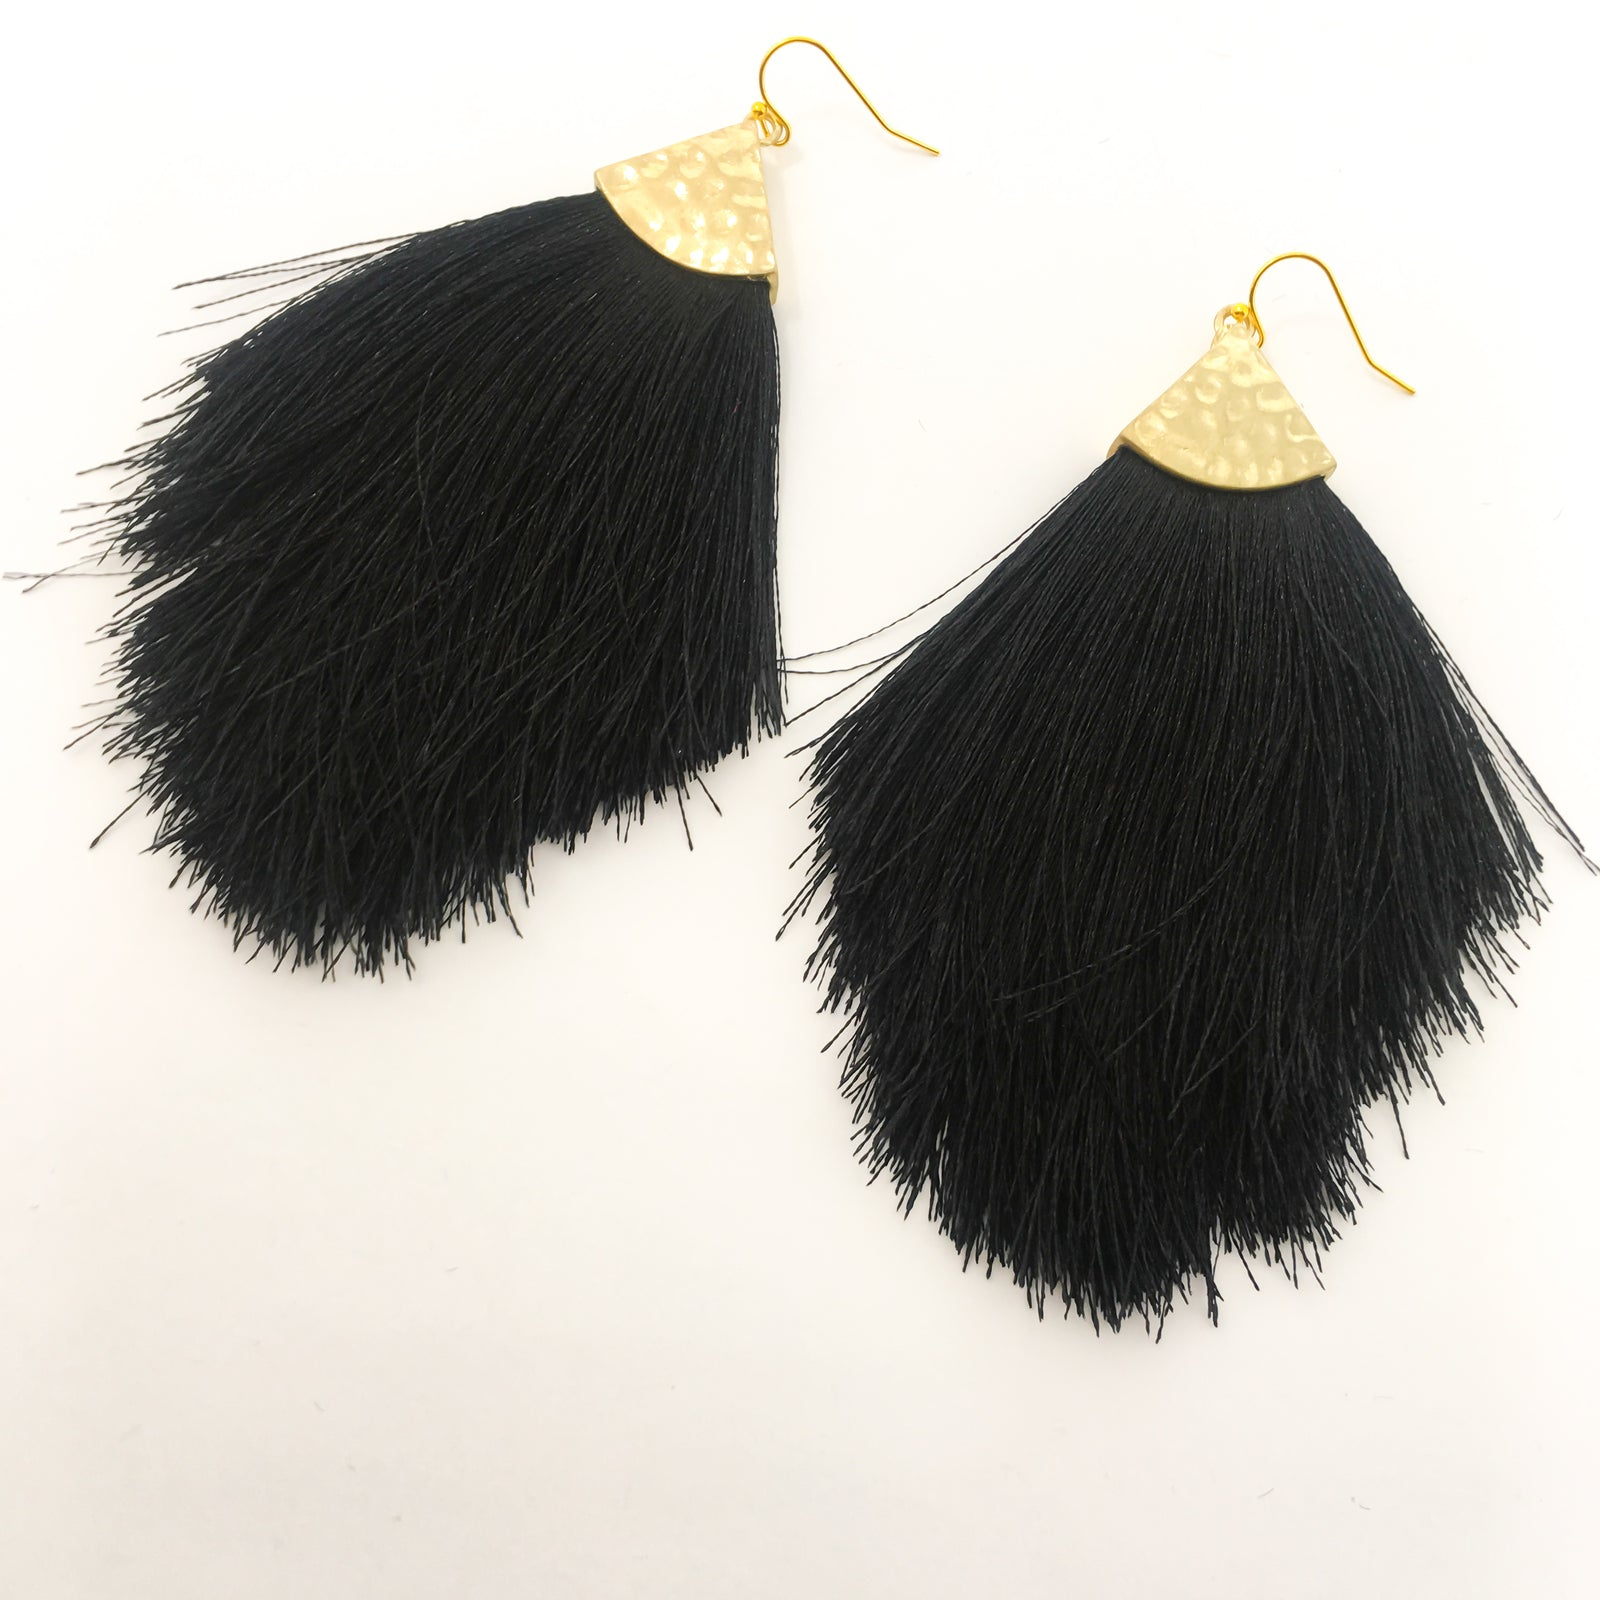 LARGE FEATHERED TASSEL EARRINGS | COLOR OPTIONS